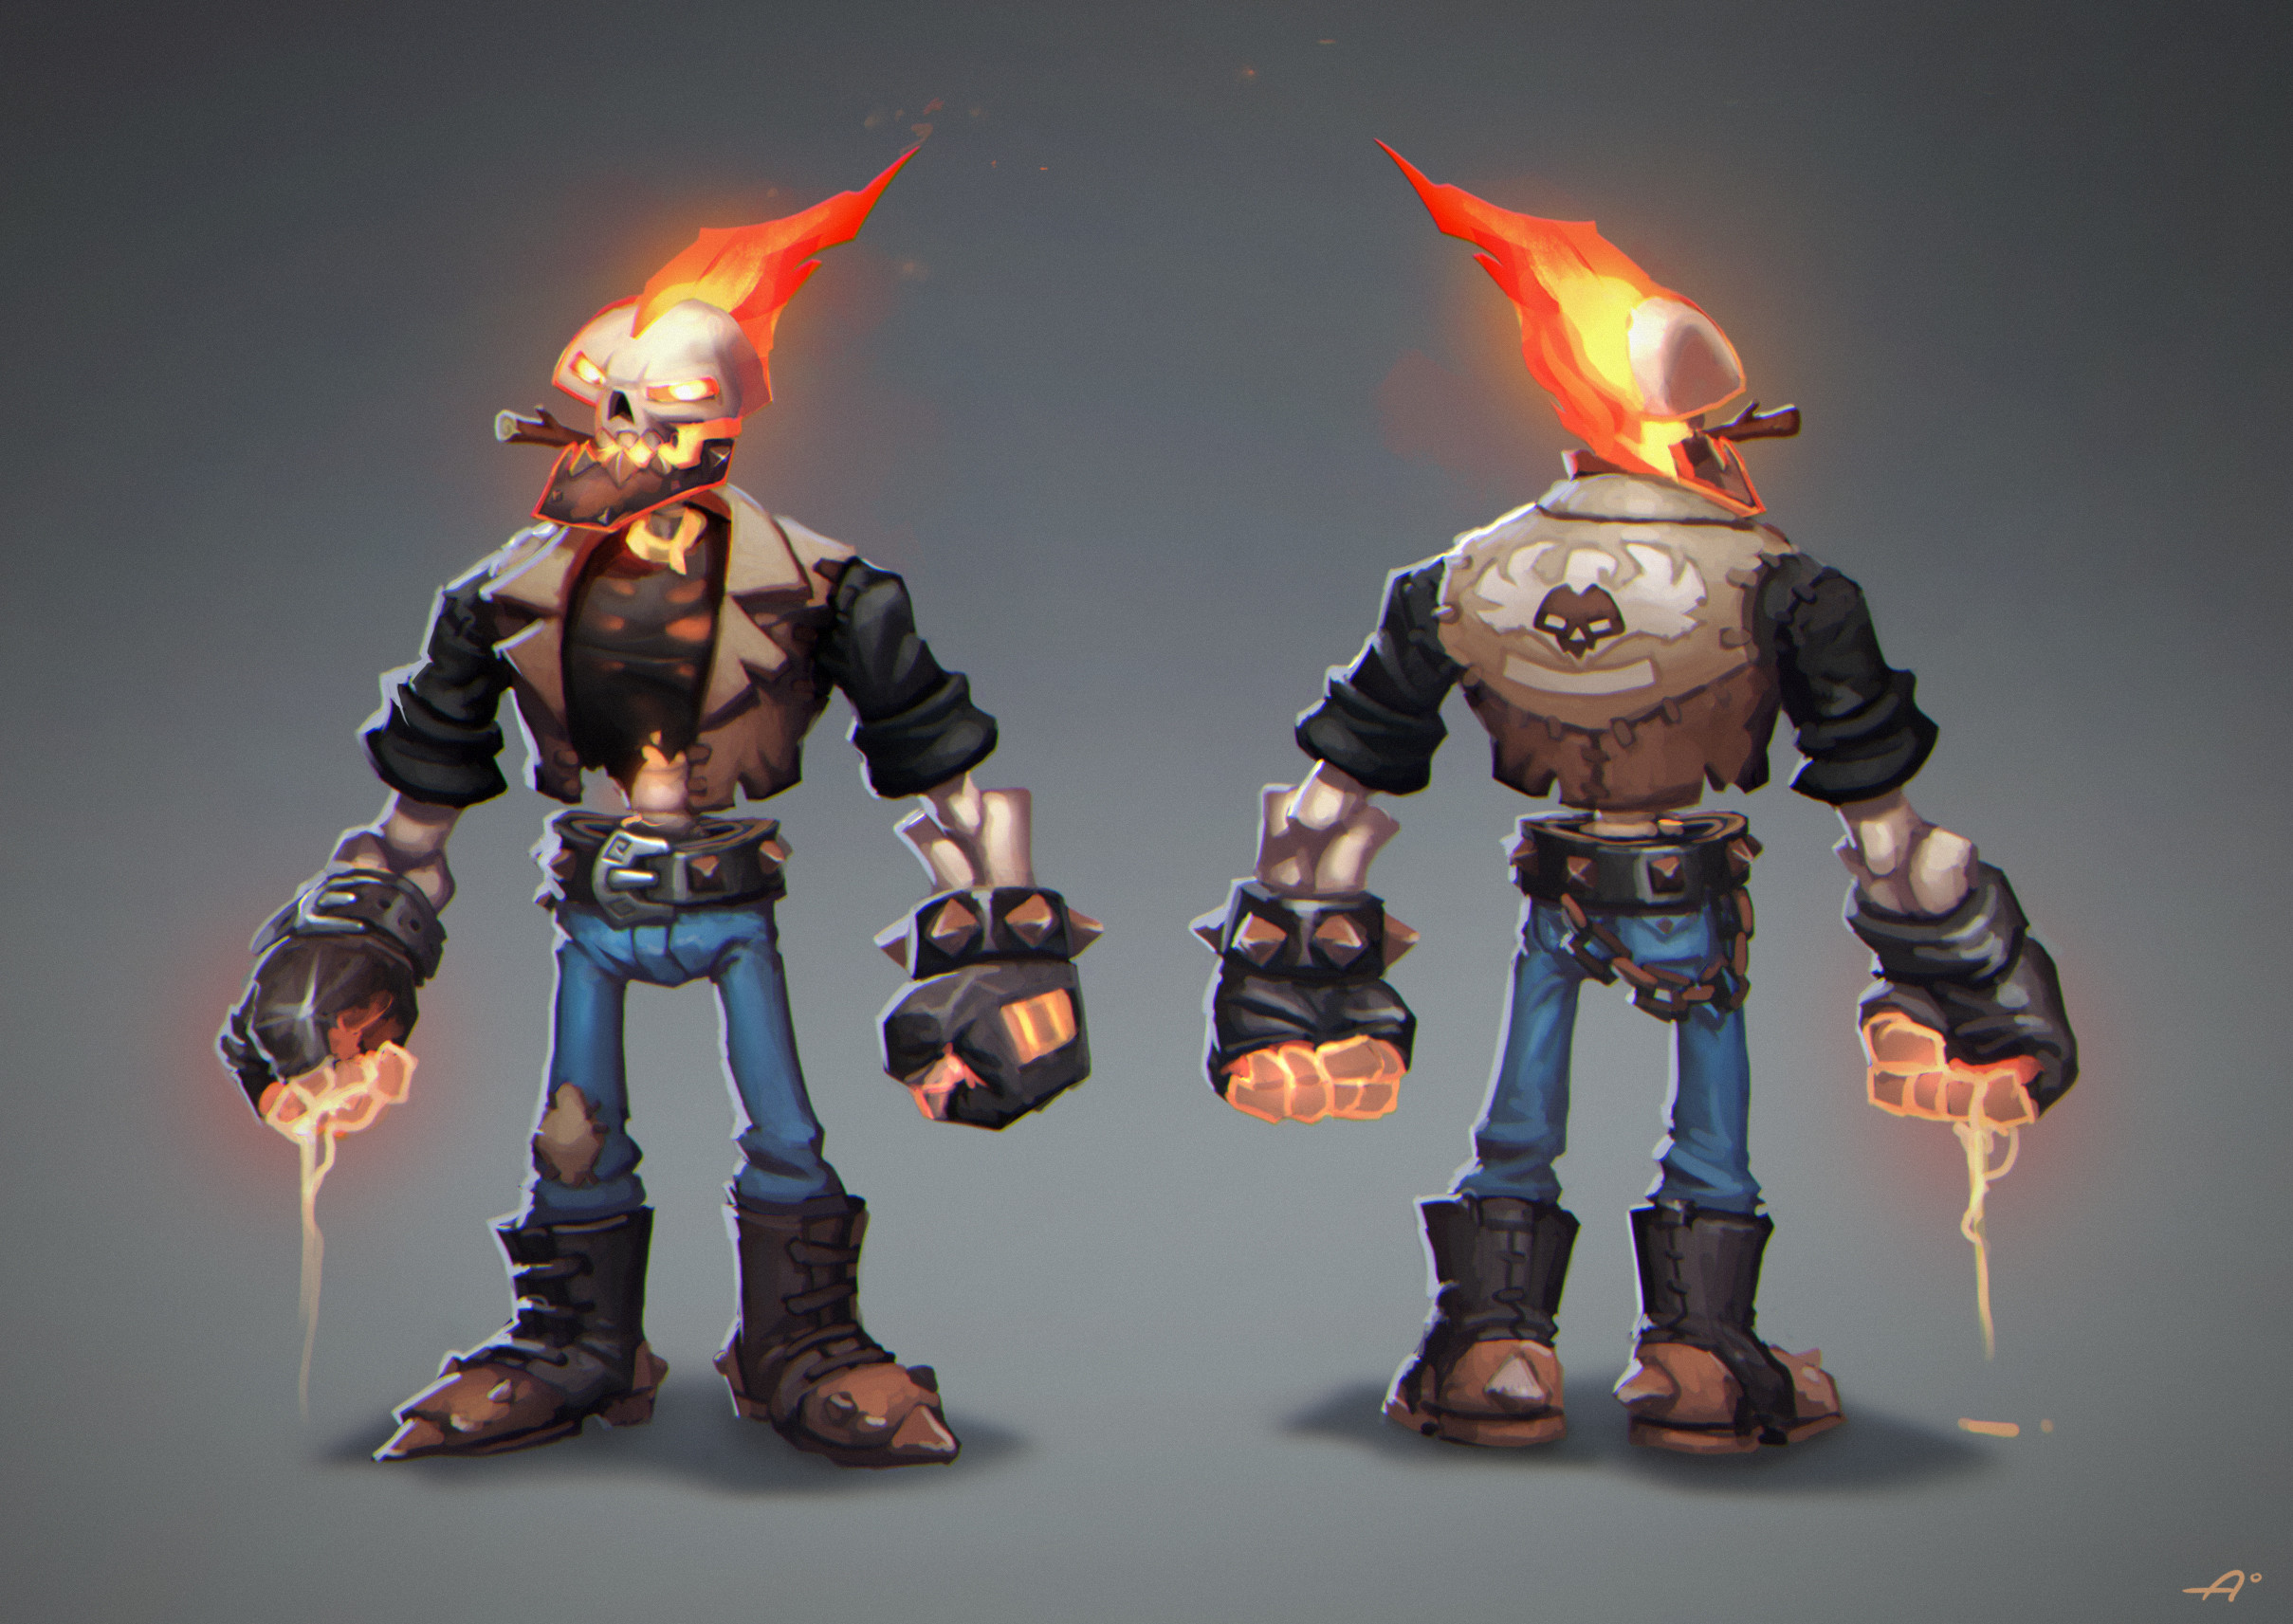 Candidate character for the prototype